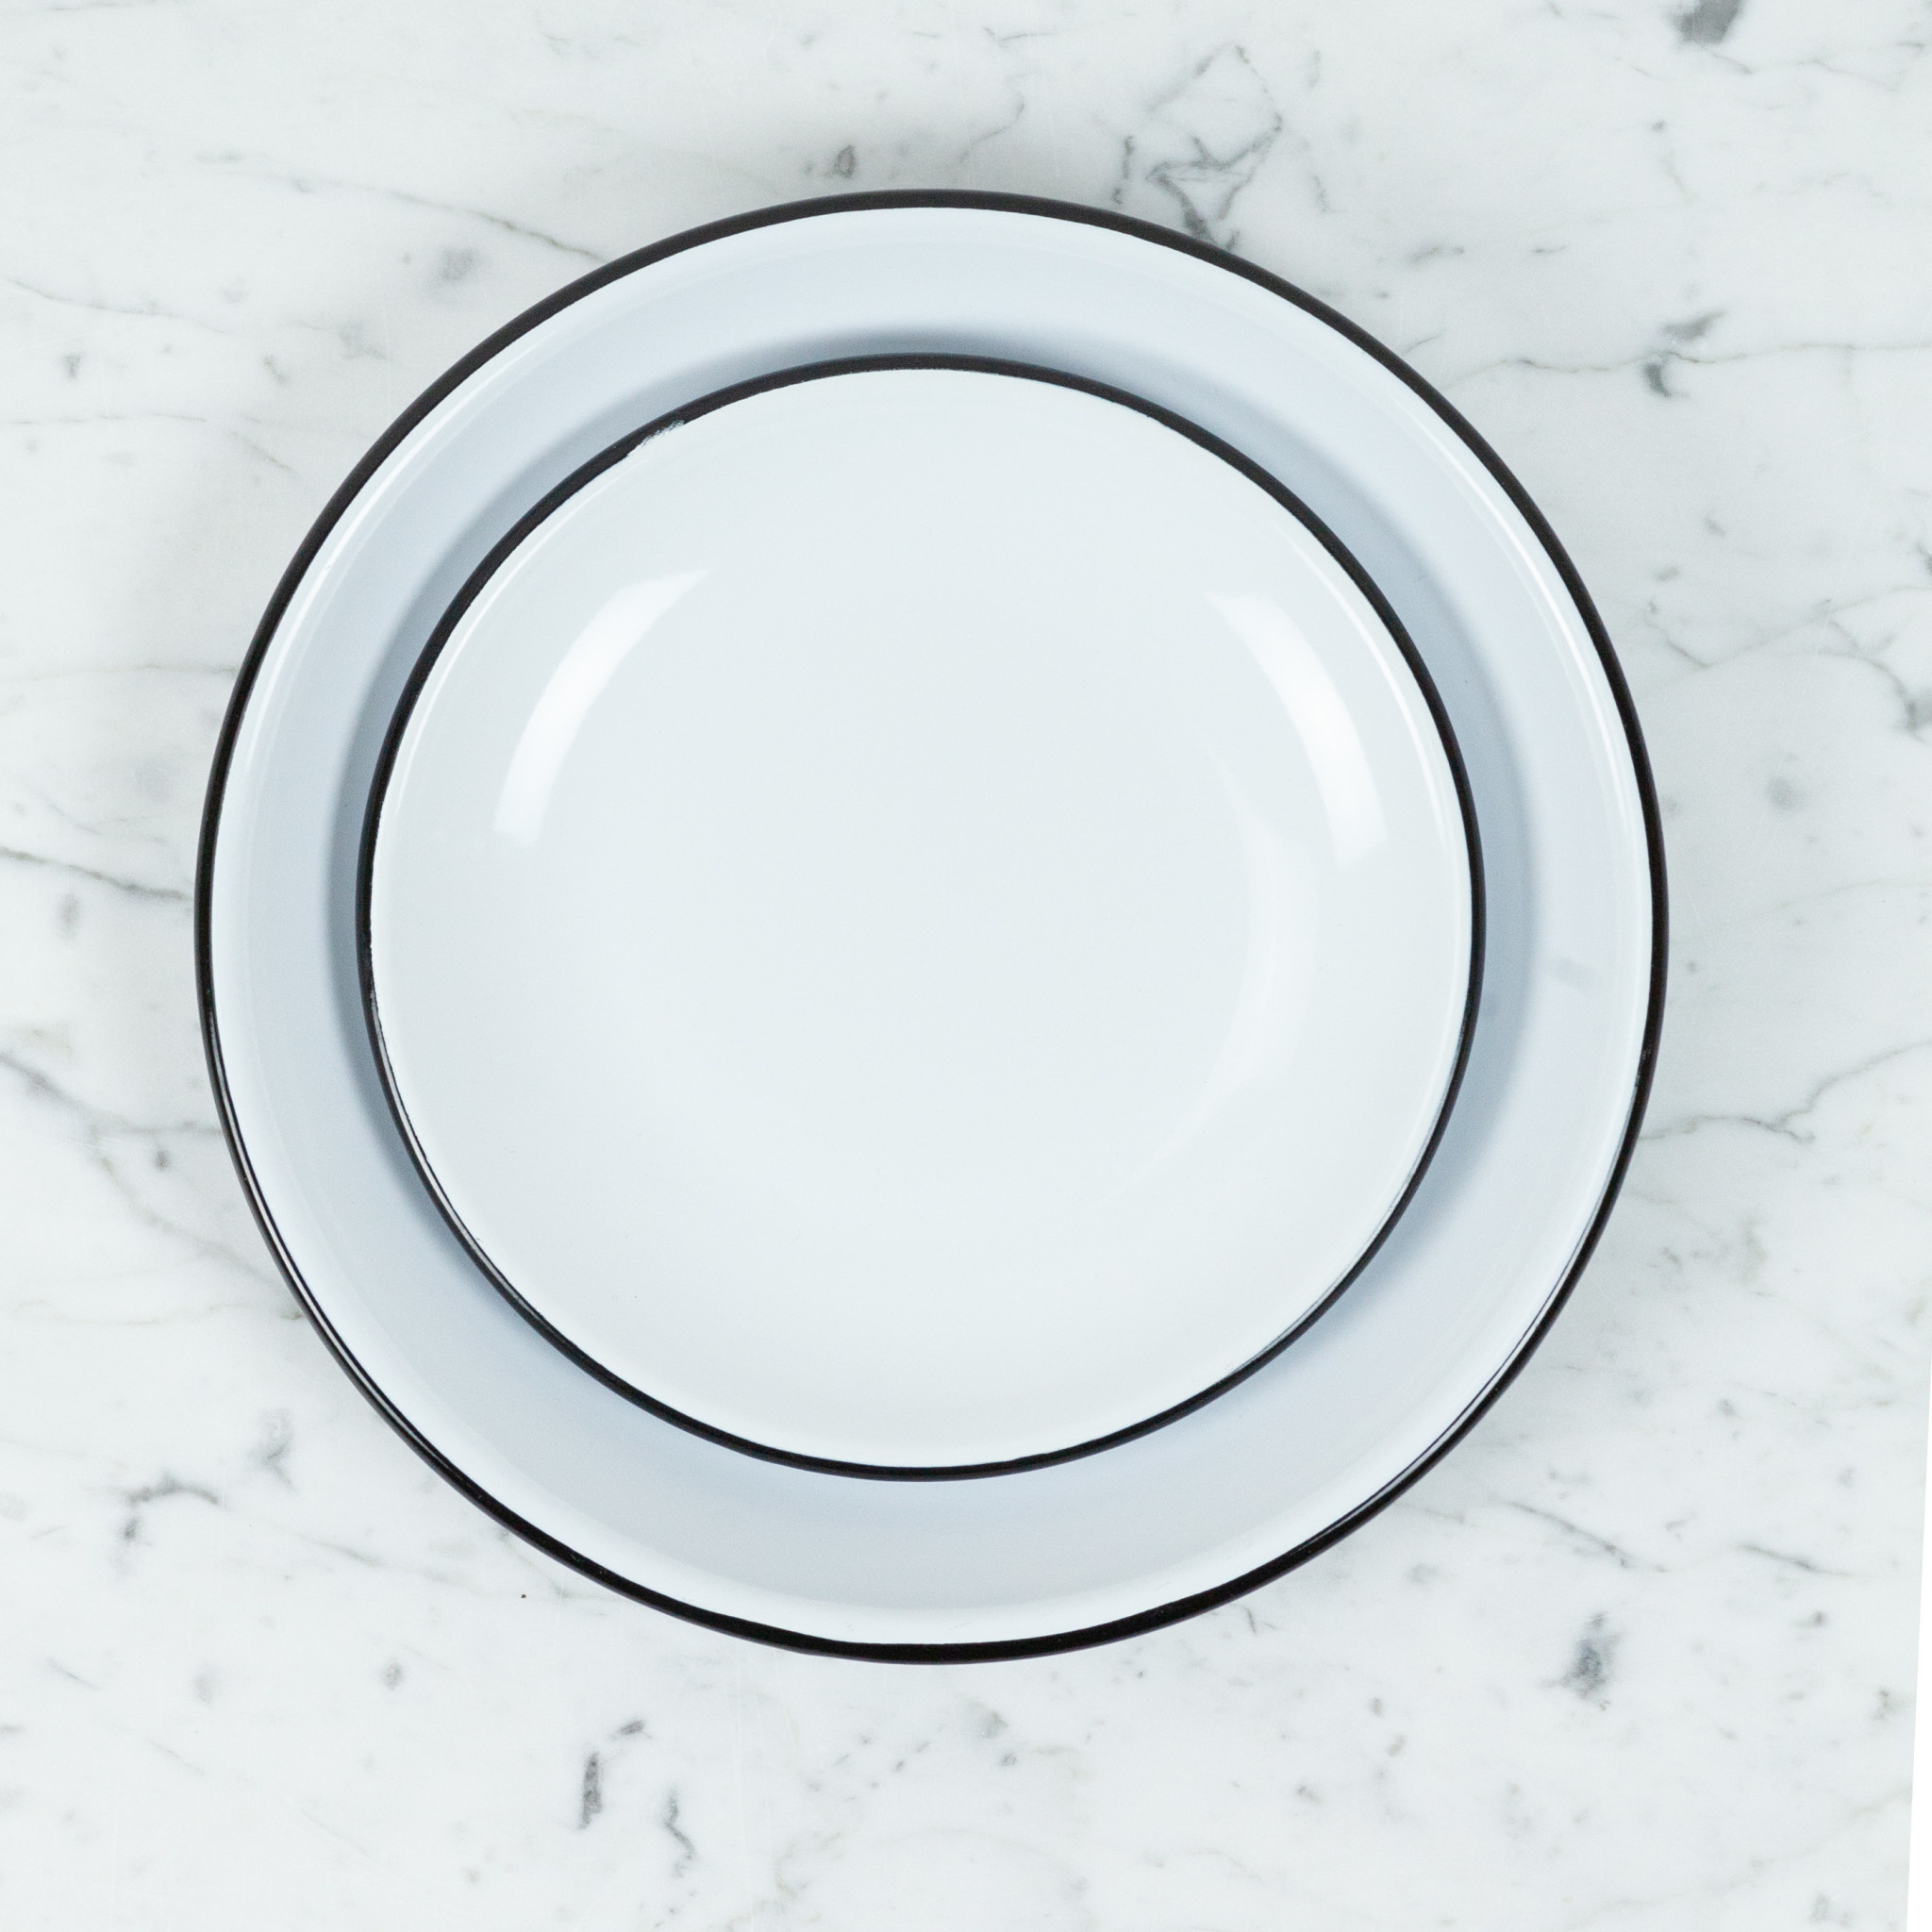 Black + White Enamel Smooth Coupe Style Salad Plate